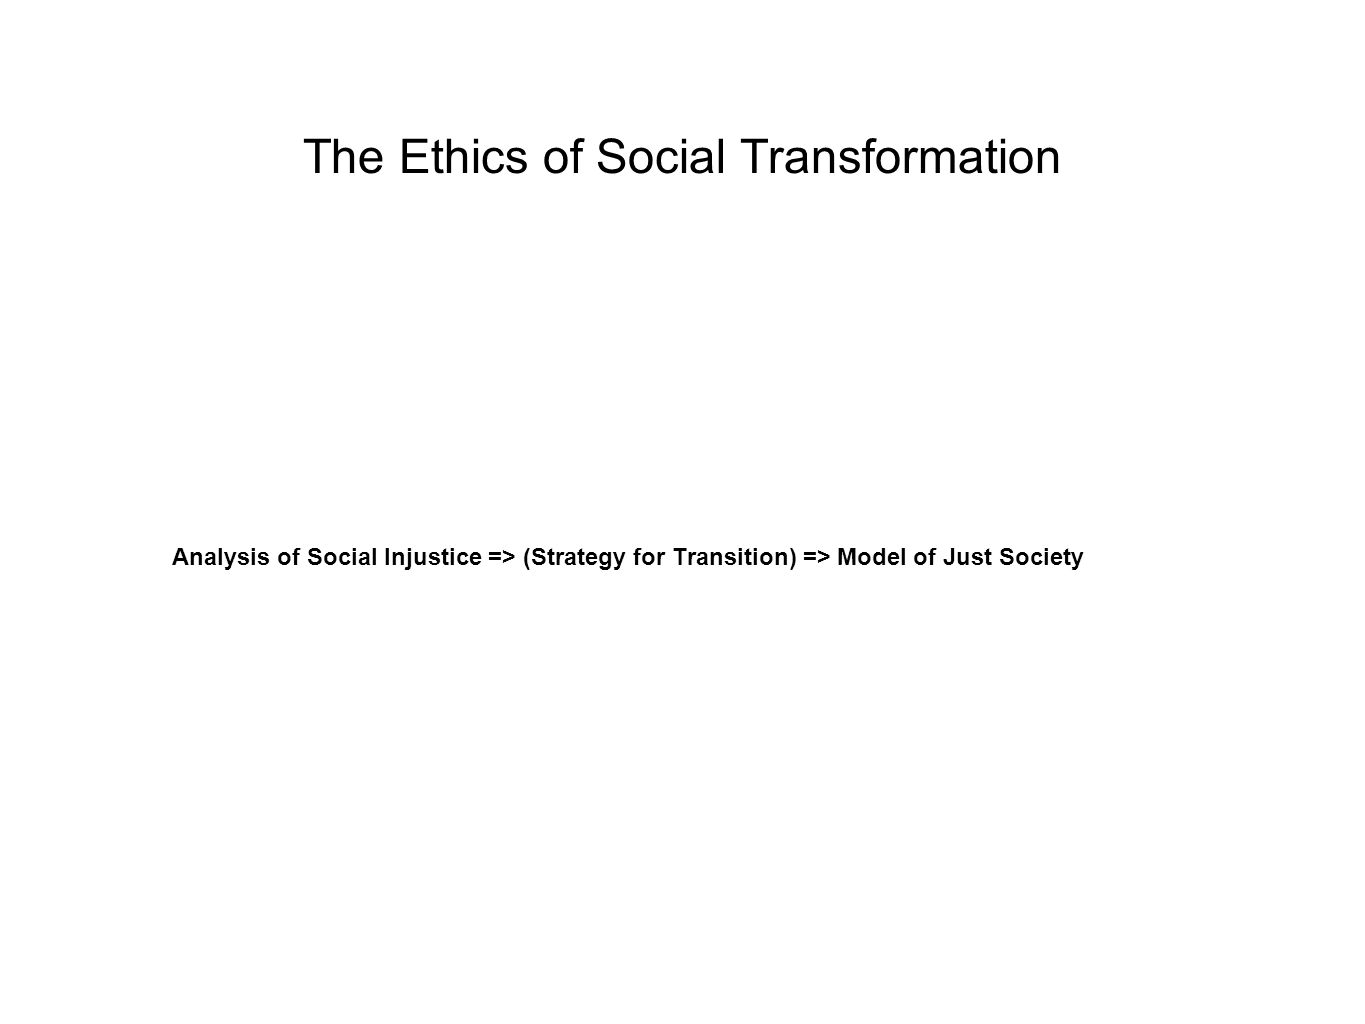 The Ethics of Social Transformation Analysis of Social Injustice => (Strategy for Transition) => Model of Just Society